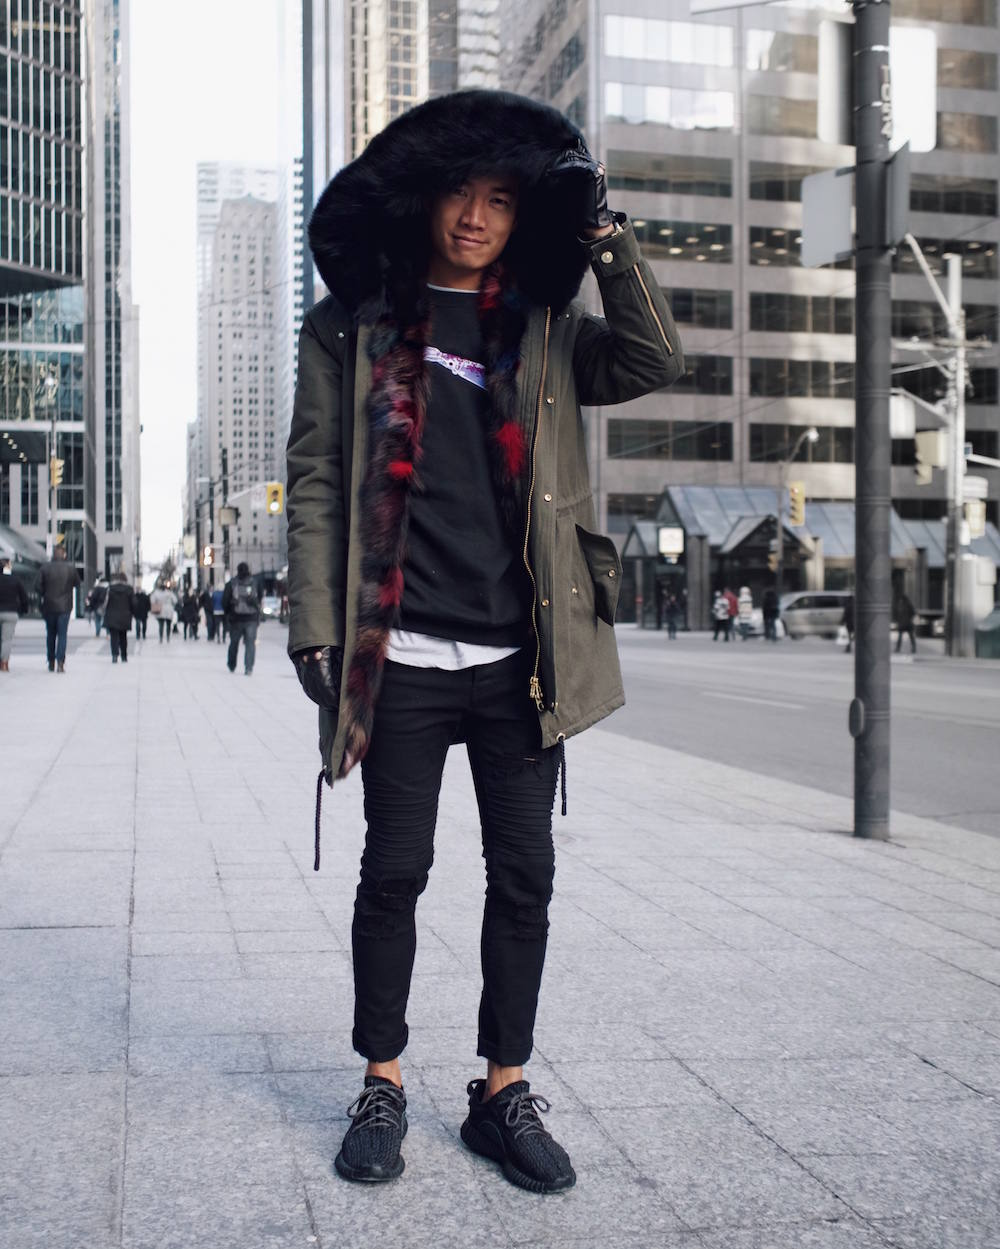 alexander-liang-mens-winter-style-yeezy-350-moose-knuckles-andrew-coimbra